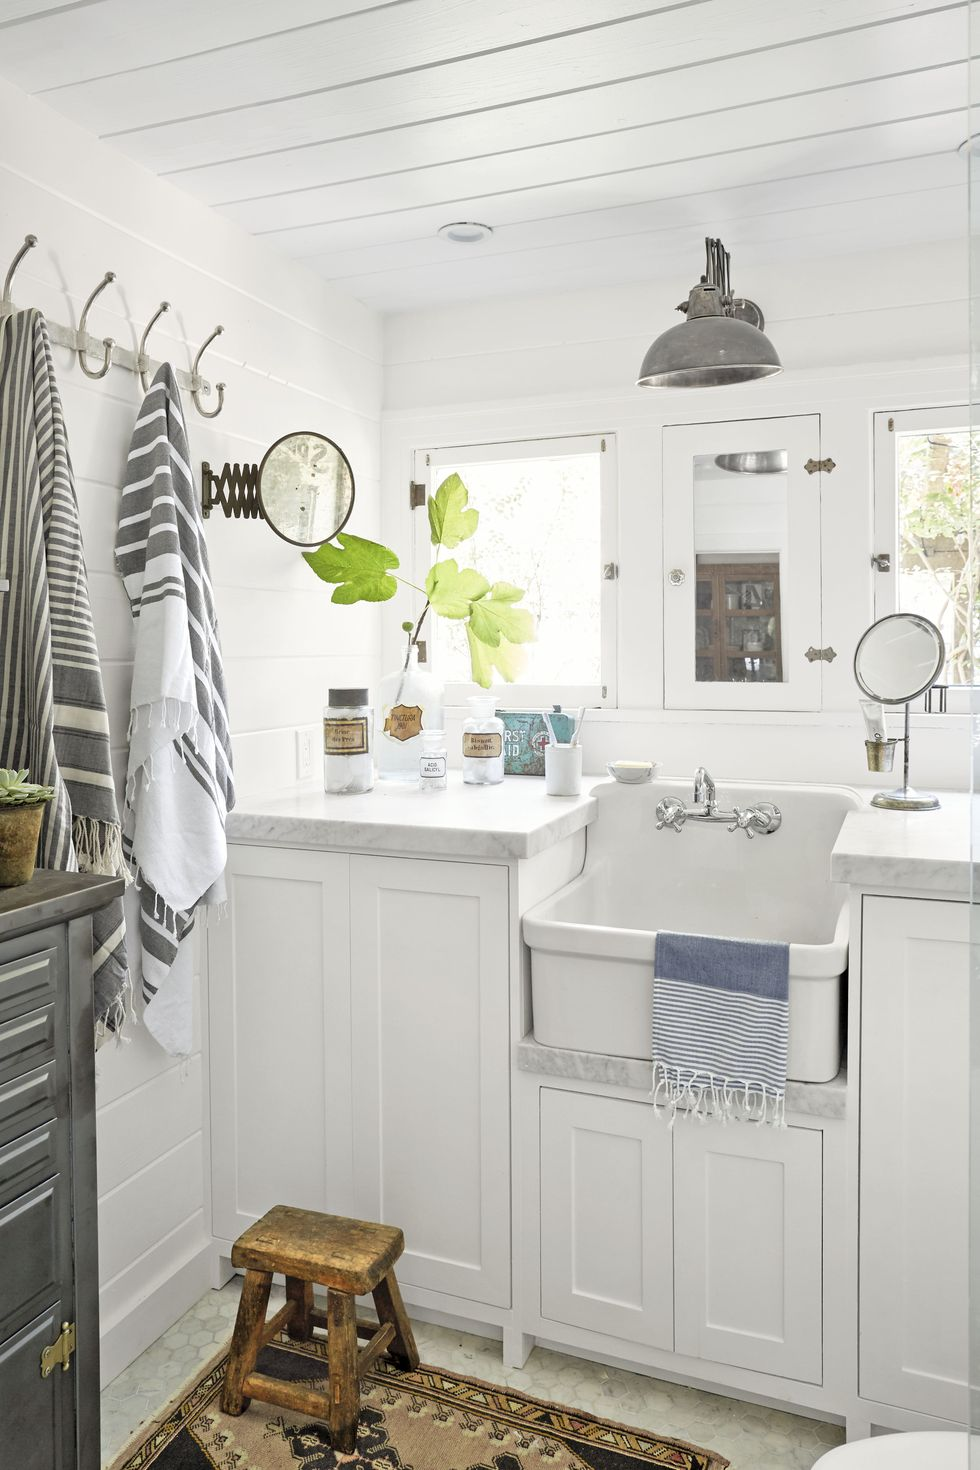 It works even on a small bathroom! Source: Country Living